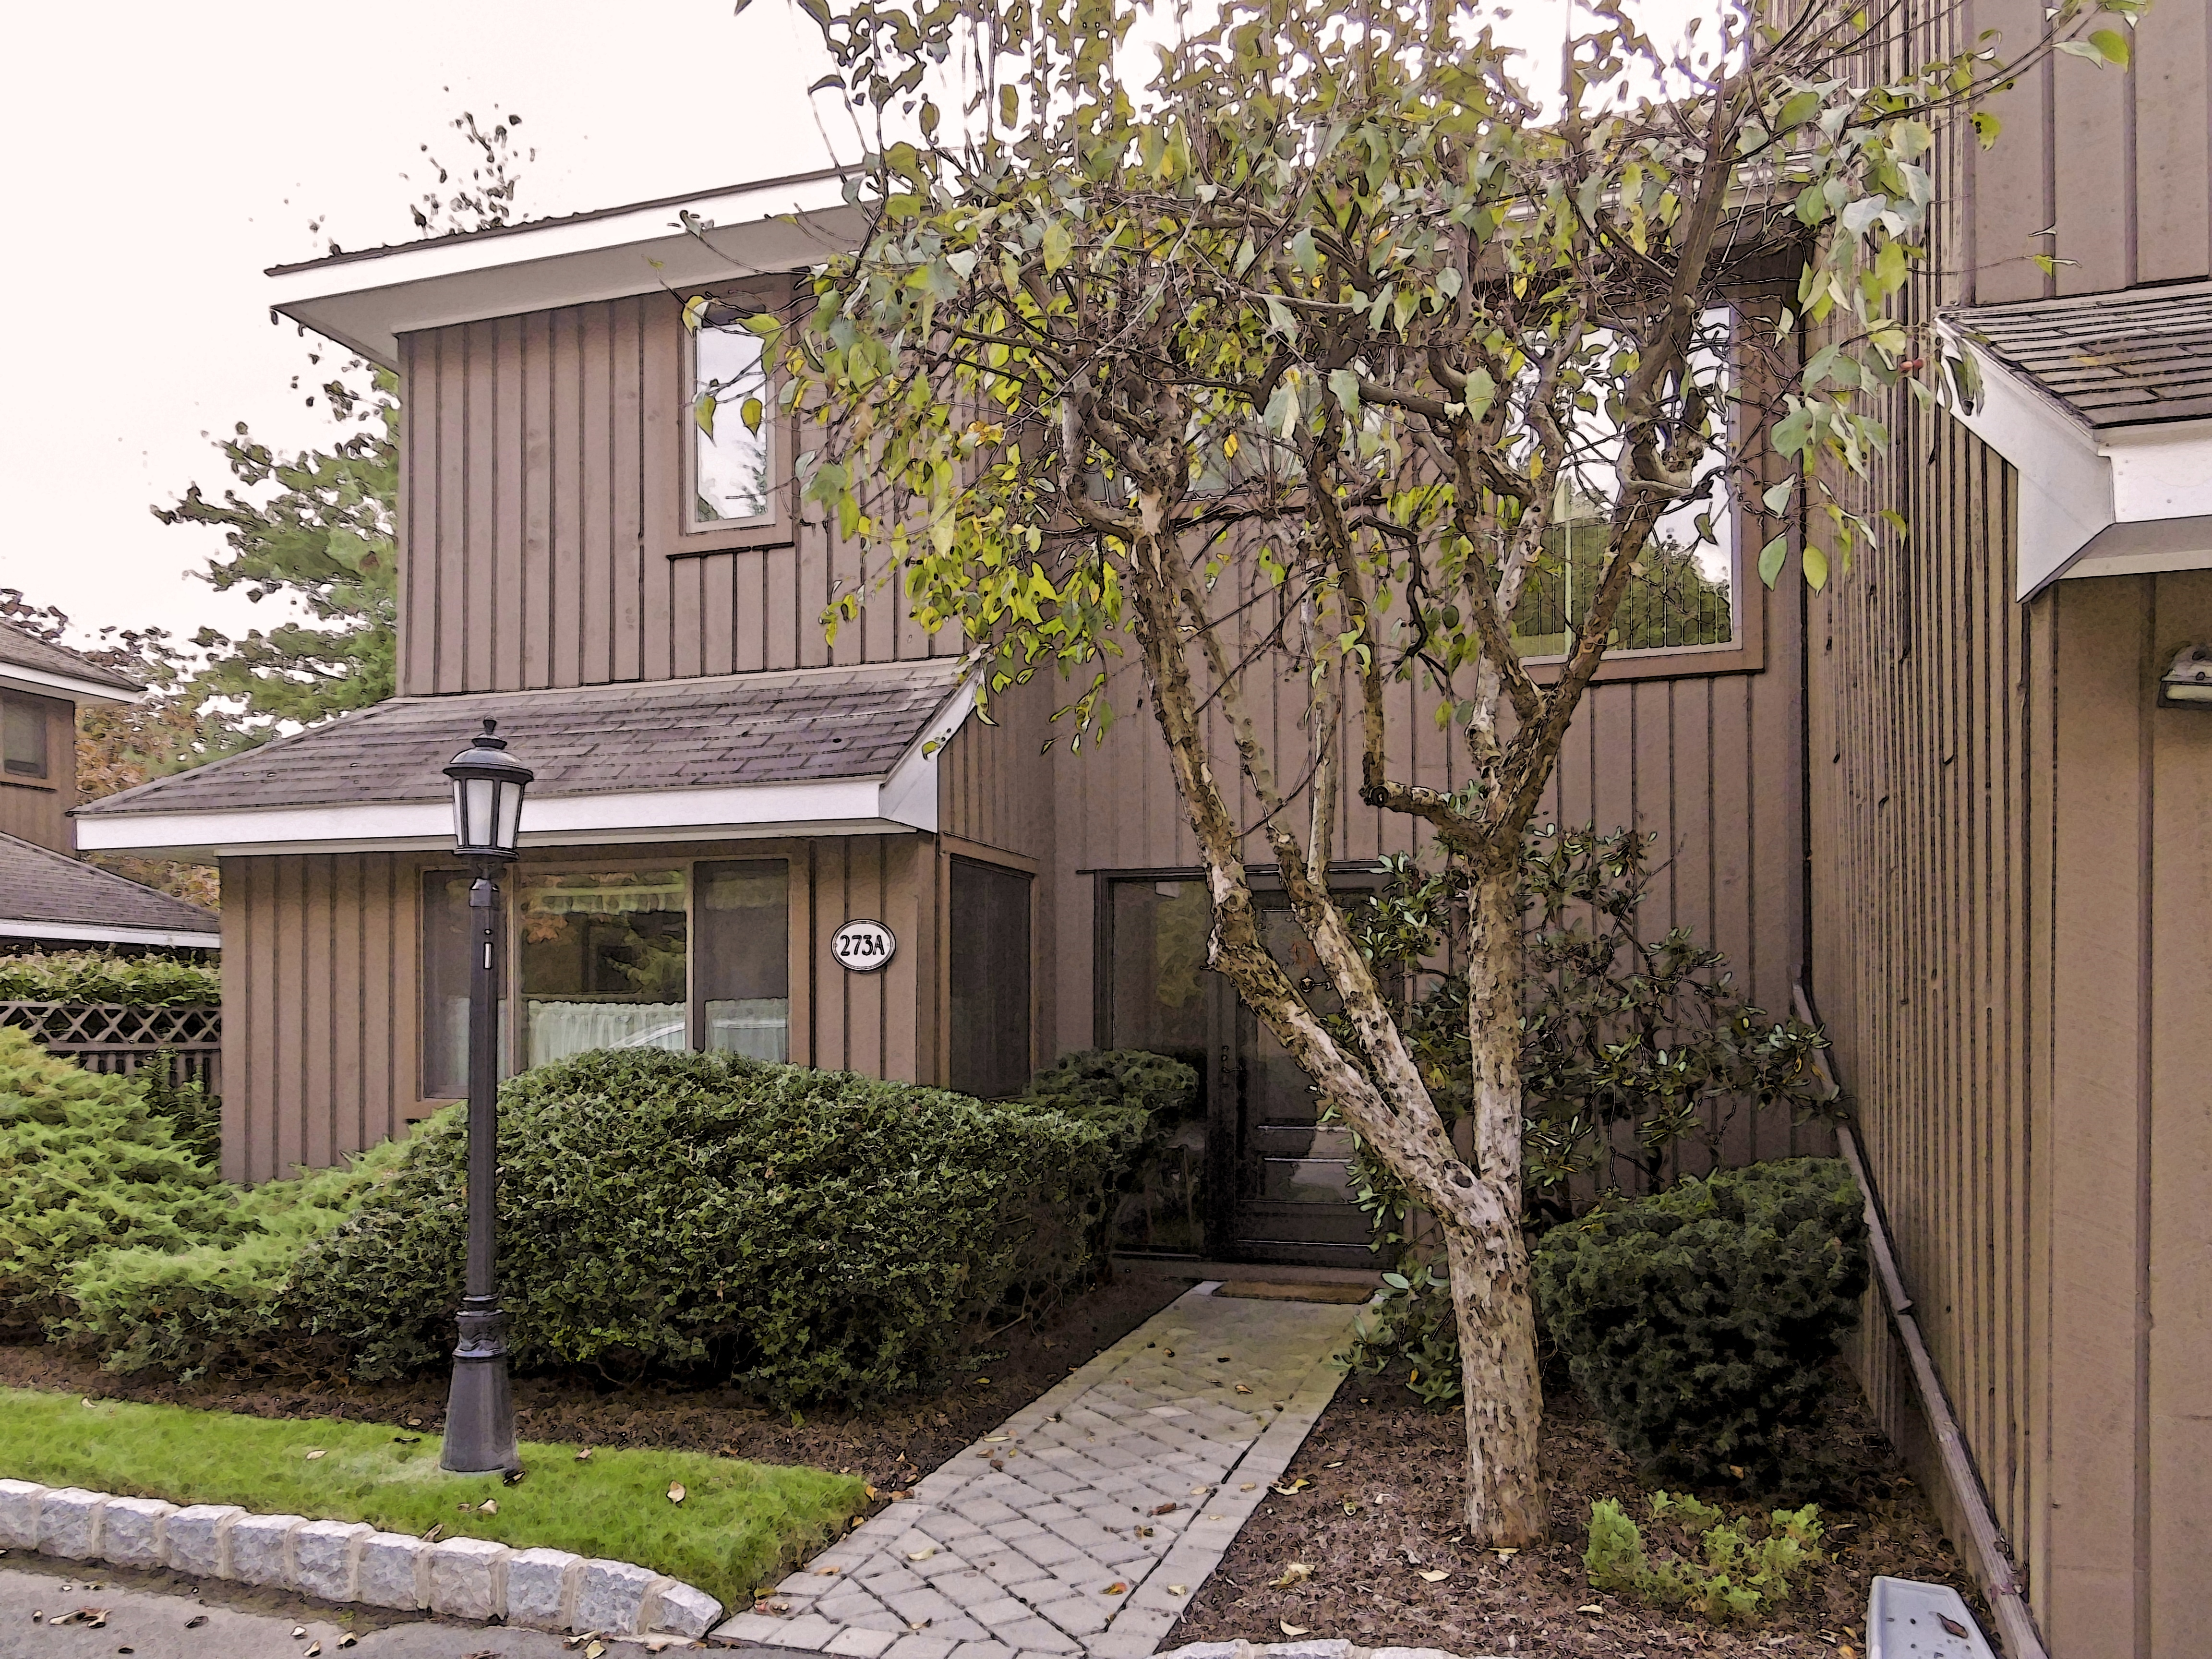 273A S Broadway, Tarrytown, NY 10591